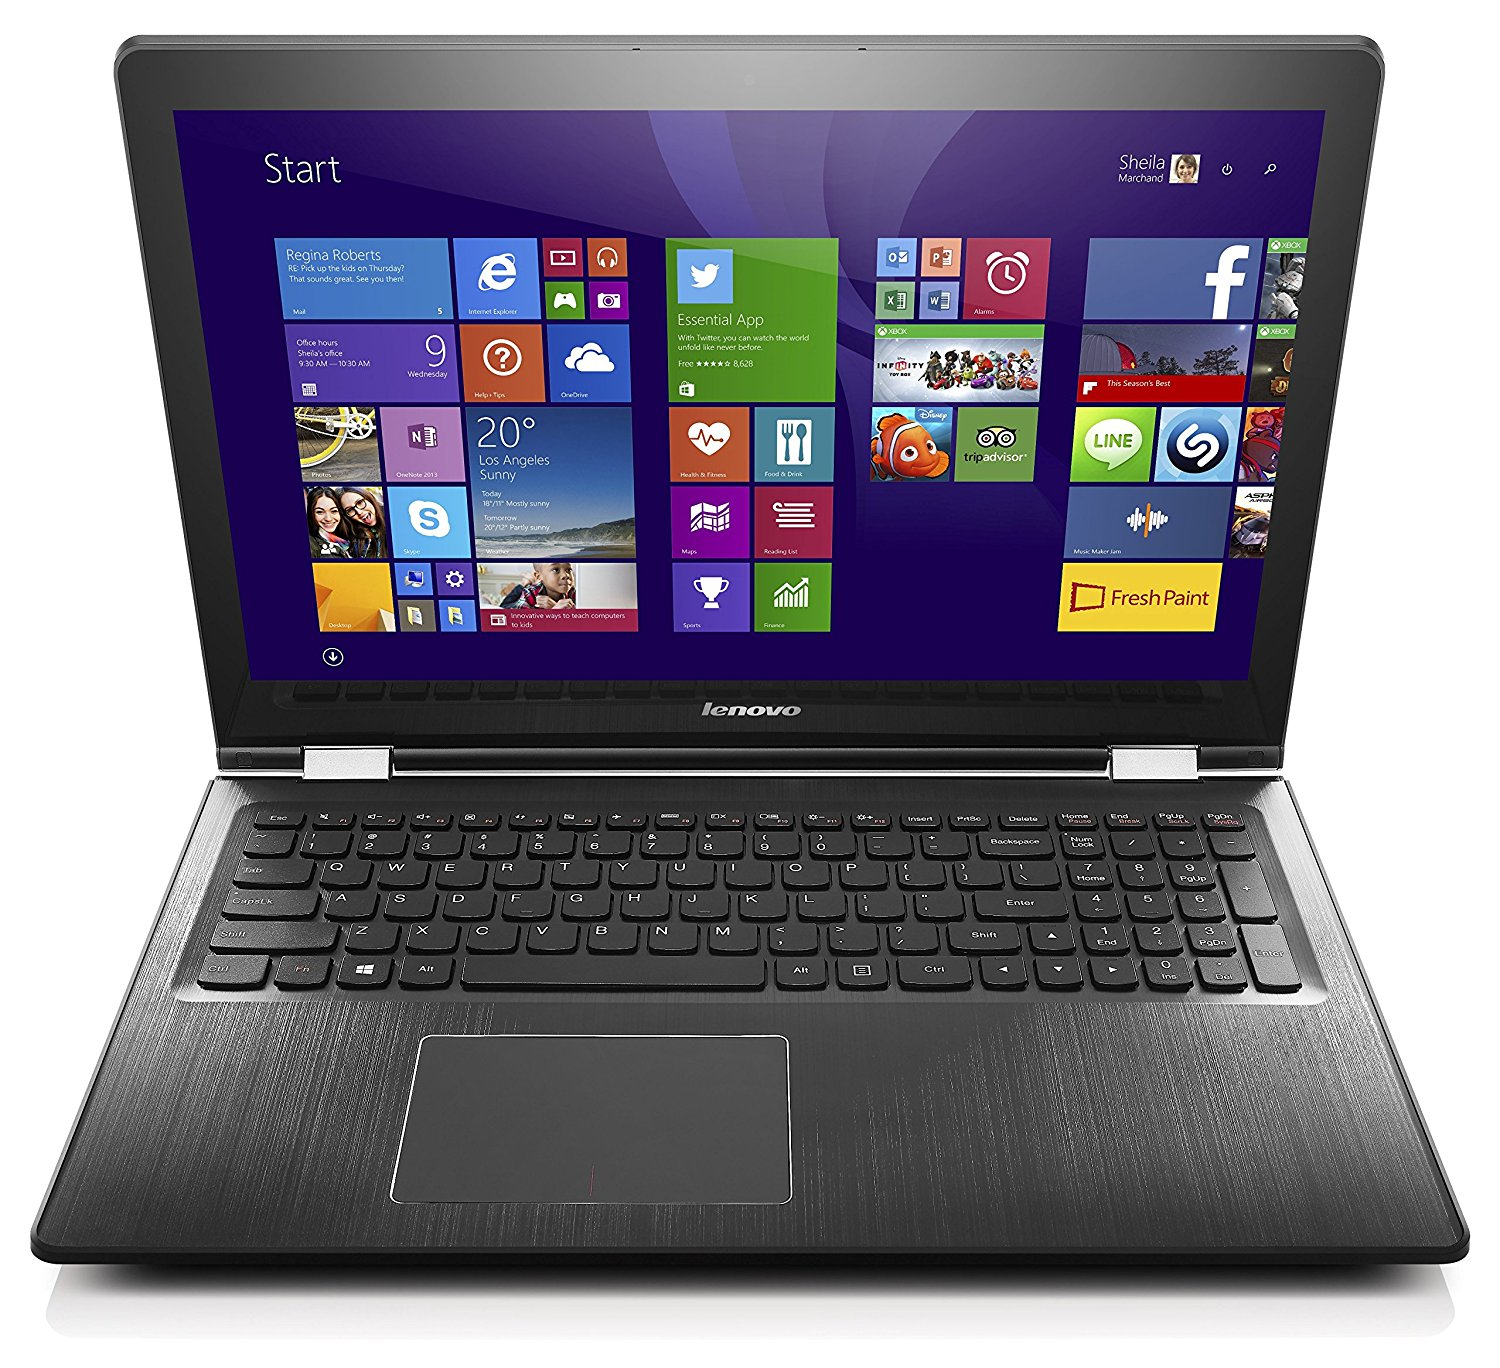 Lenovo Flex 4 core i7